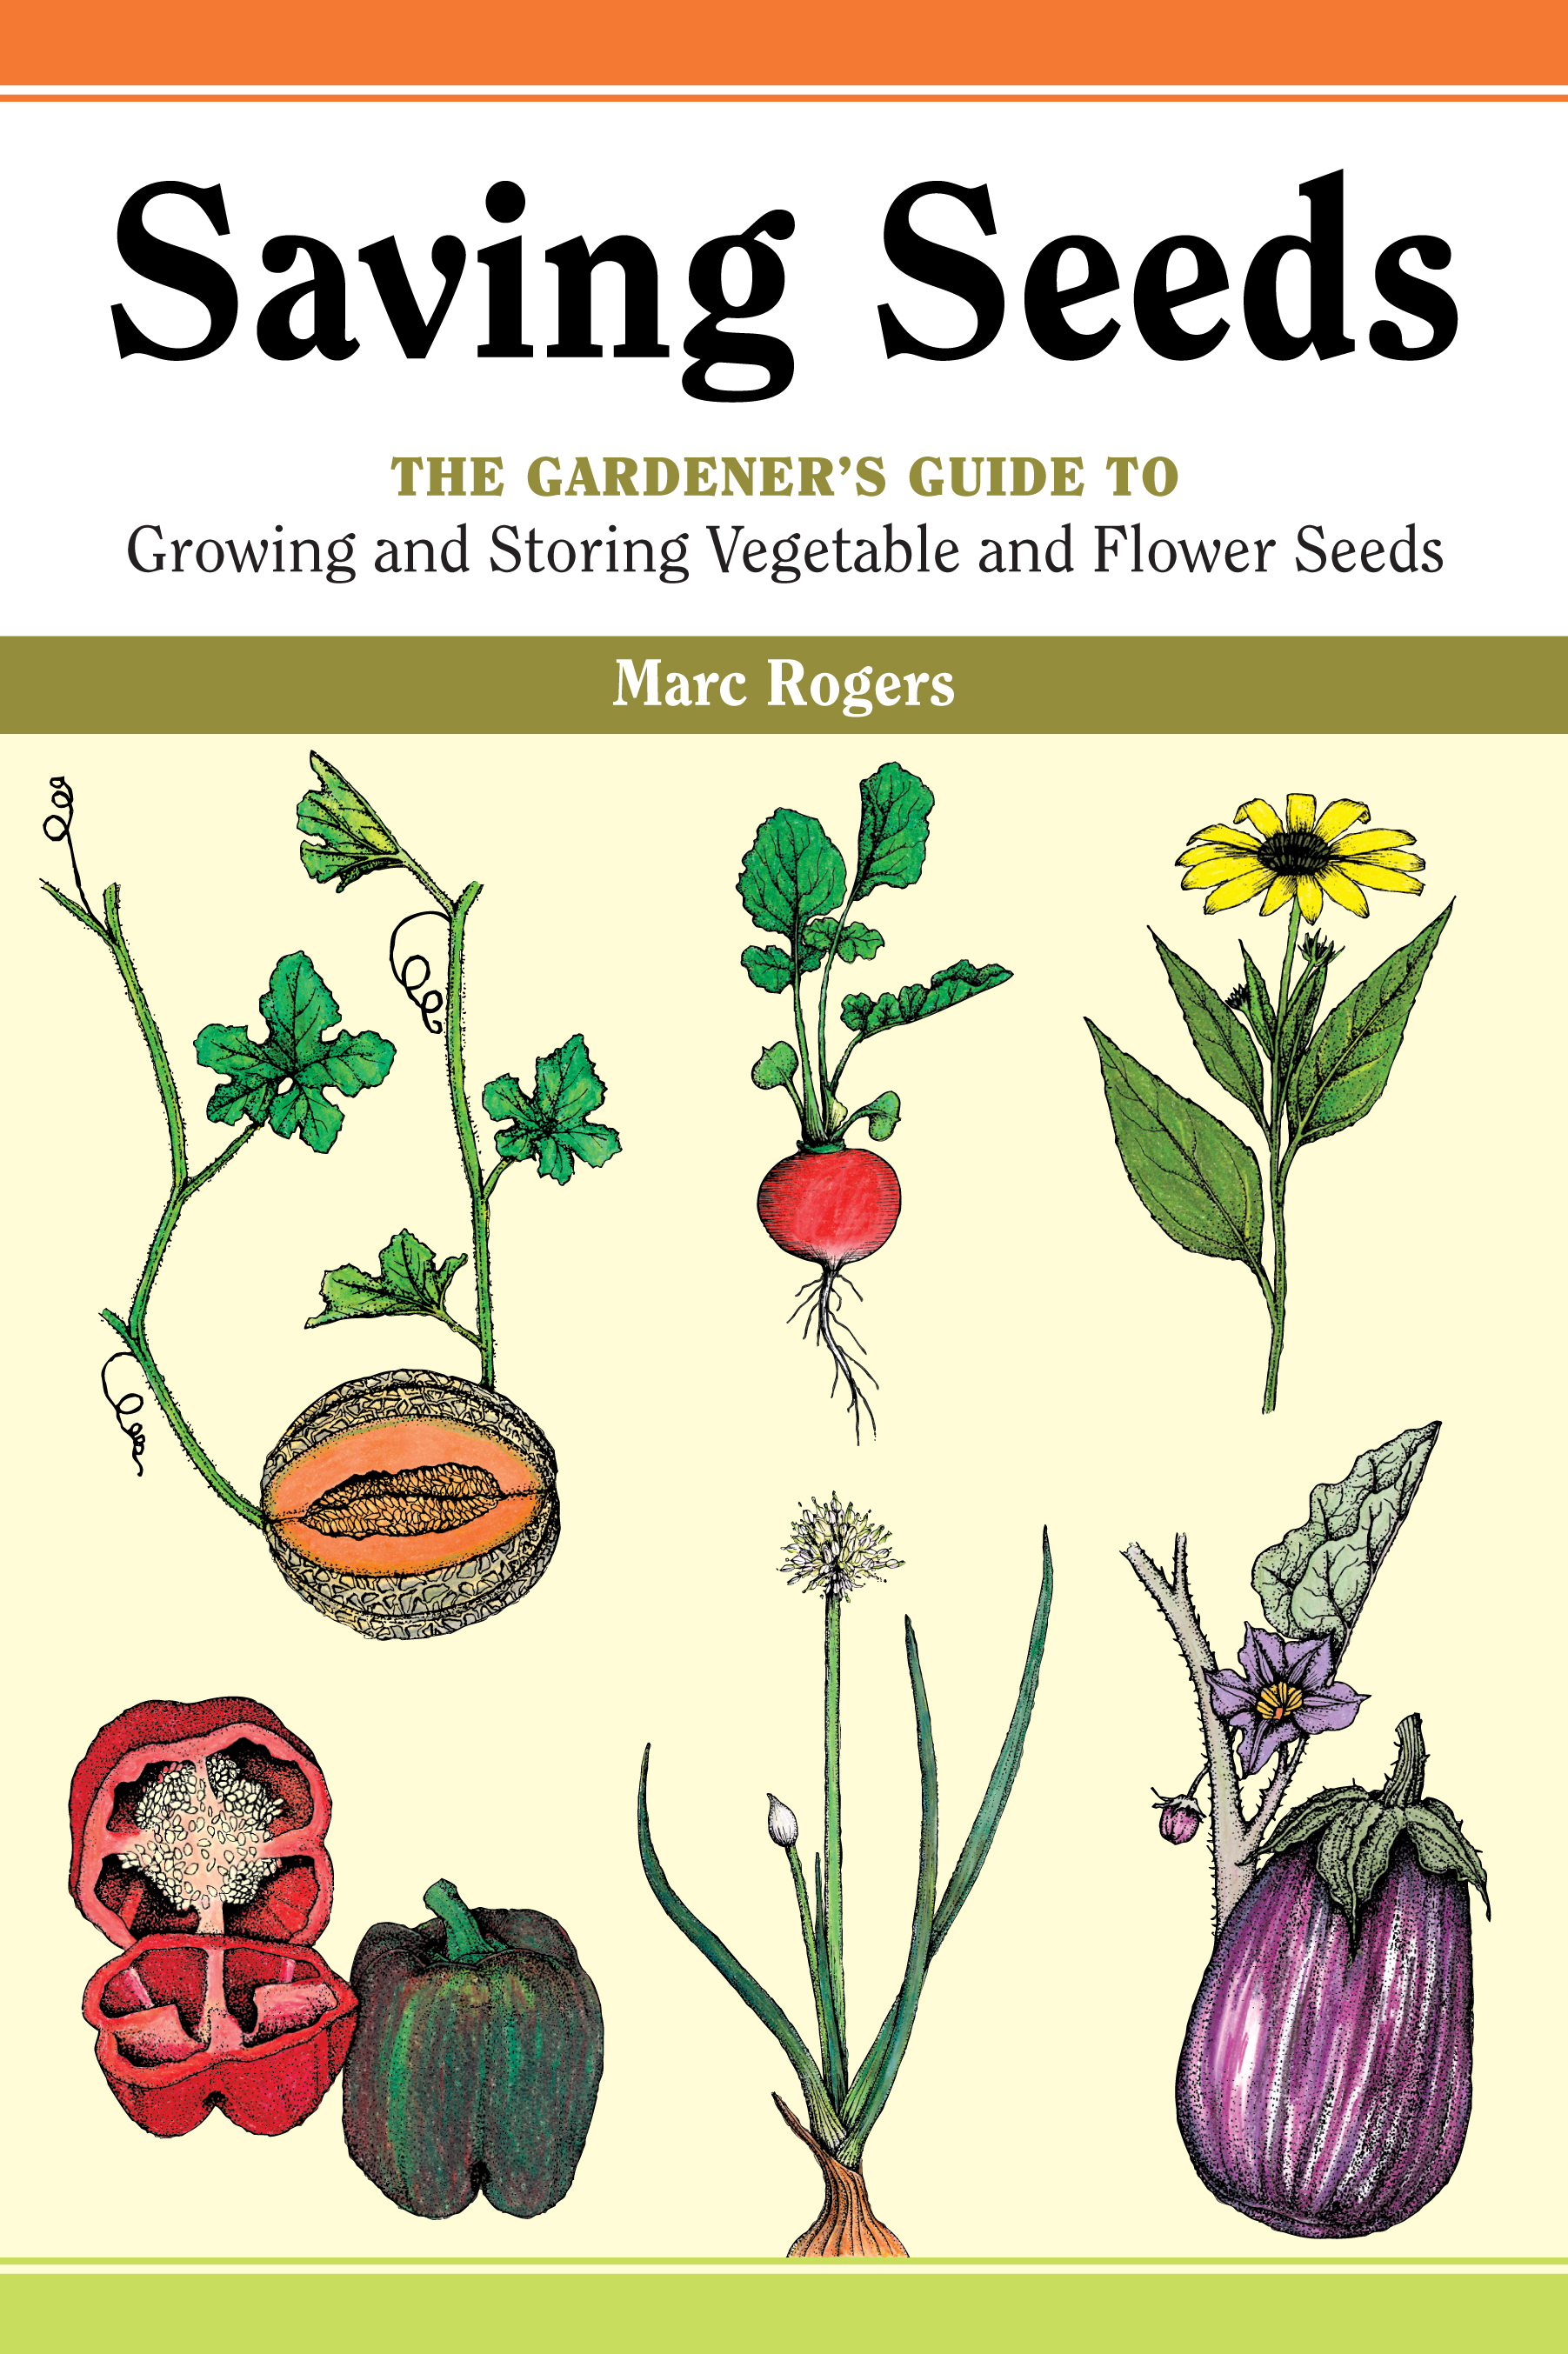 Saving Seeds The Gardener's Guide to Growing and Saving Vegetable and Flower Seeds - Marc Rogers